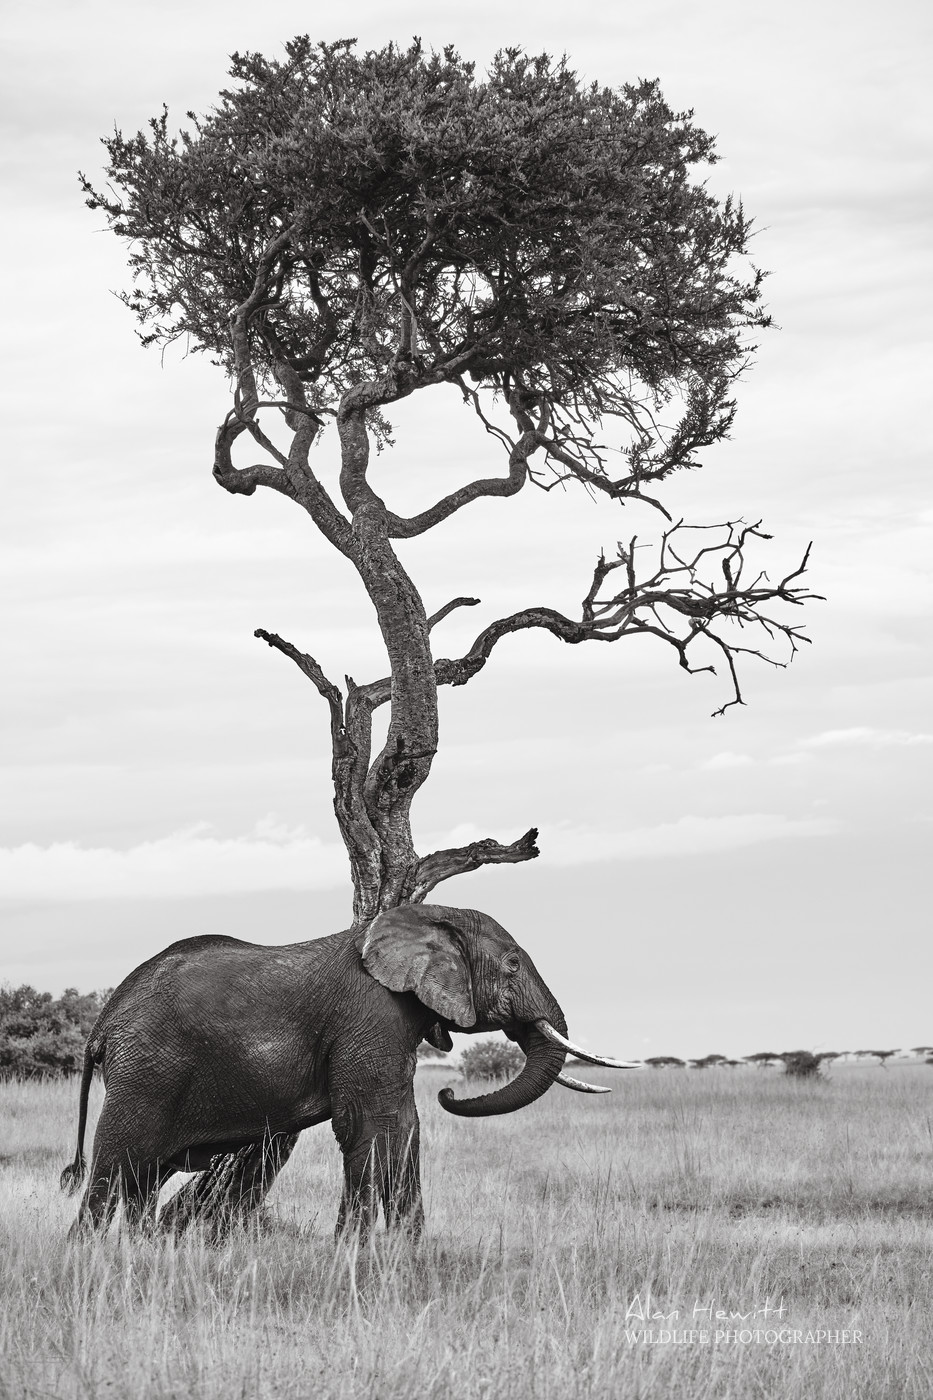 Elephant Masai Mara Alan Hewitt Photography